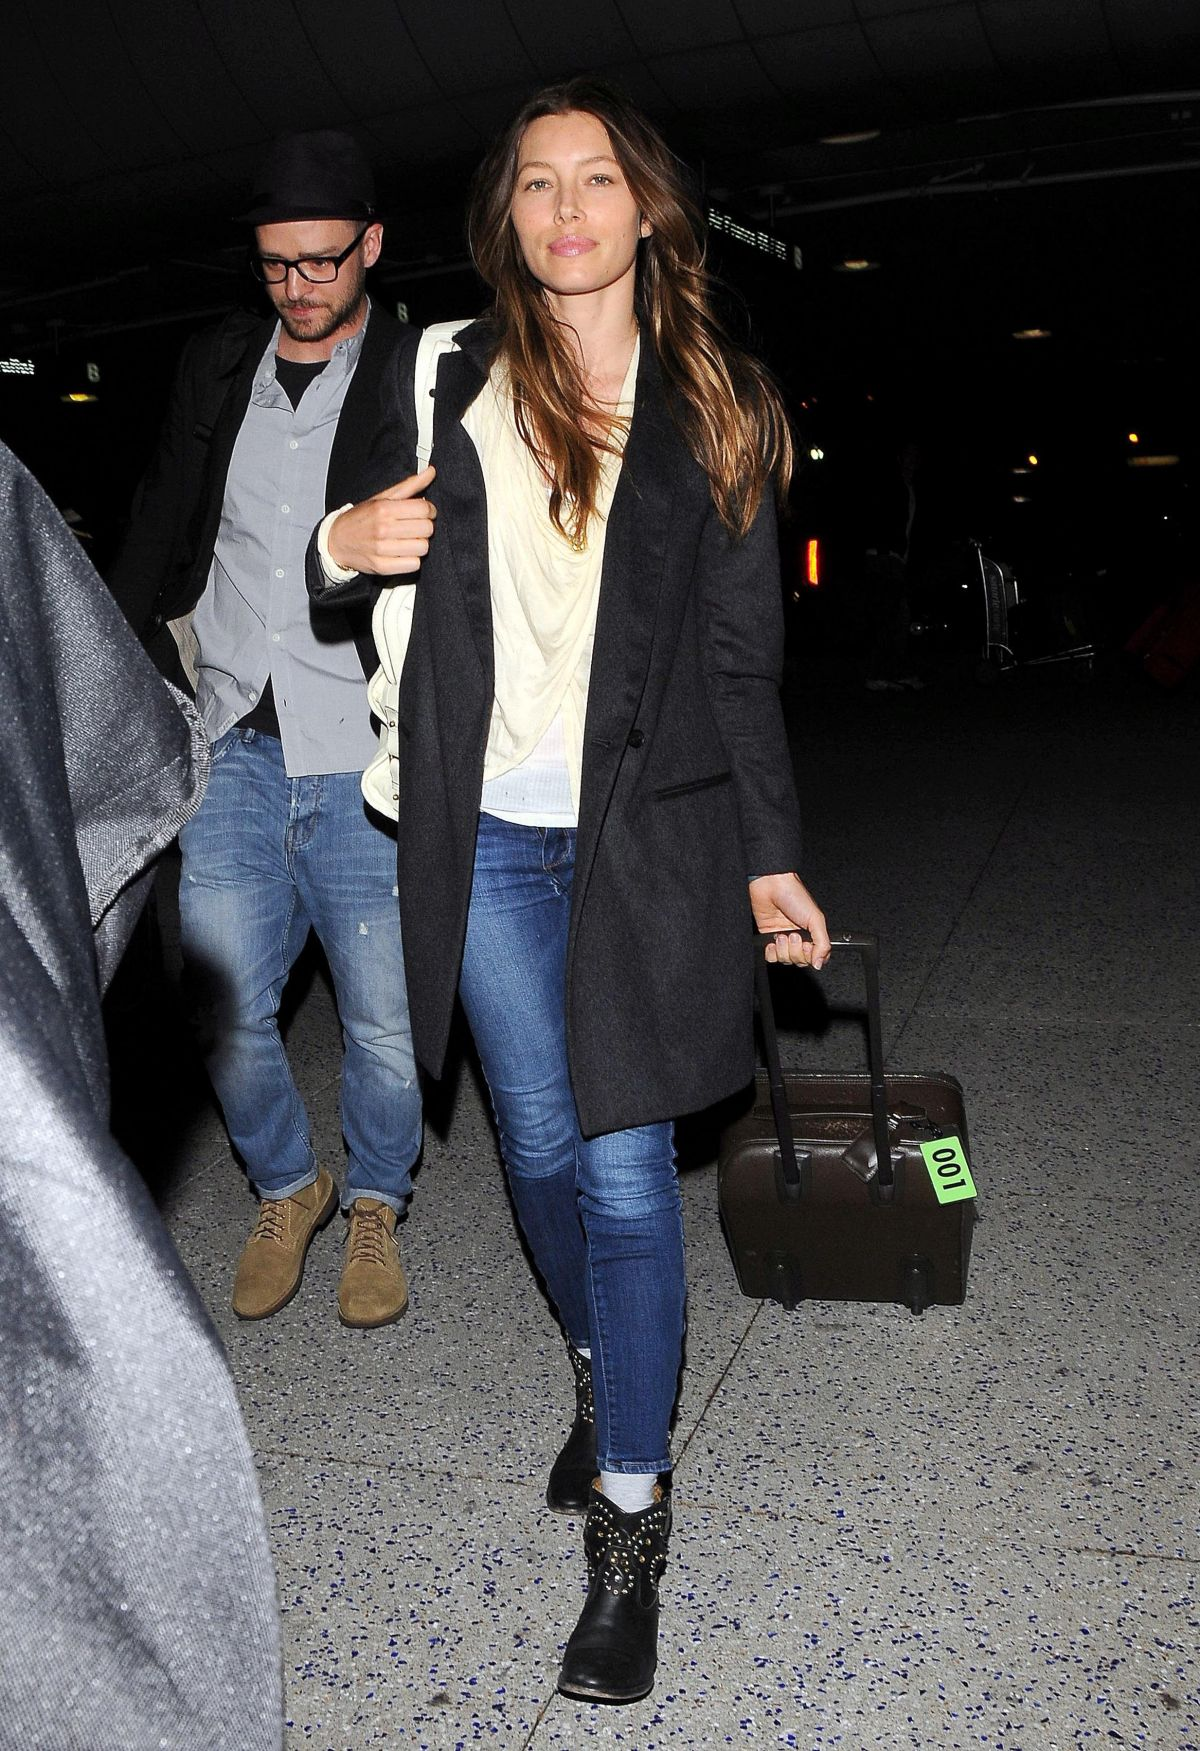 JESSICA BIEL and Justin Timberlake Arrives at LAX Airport